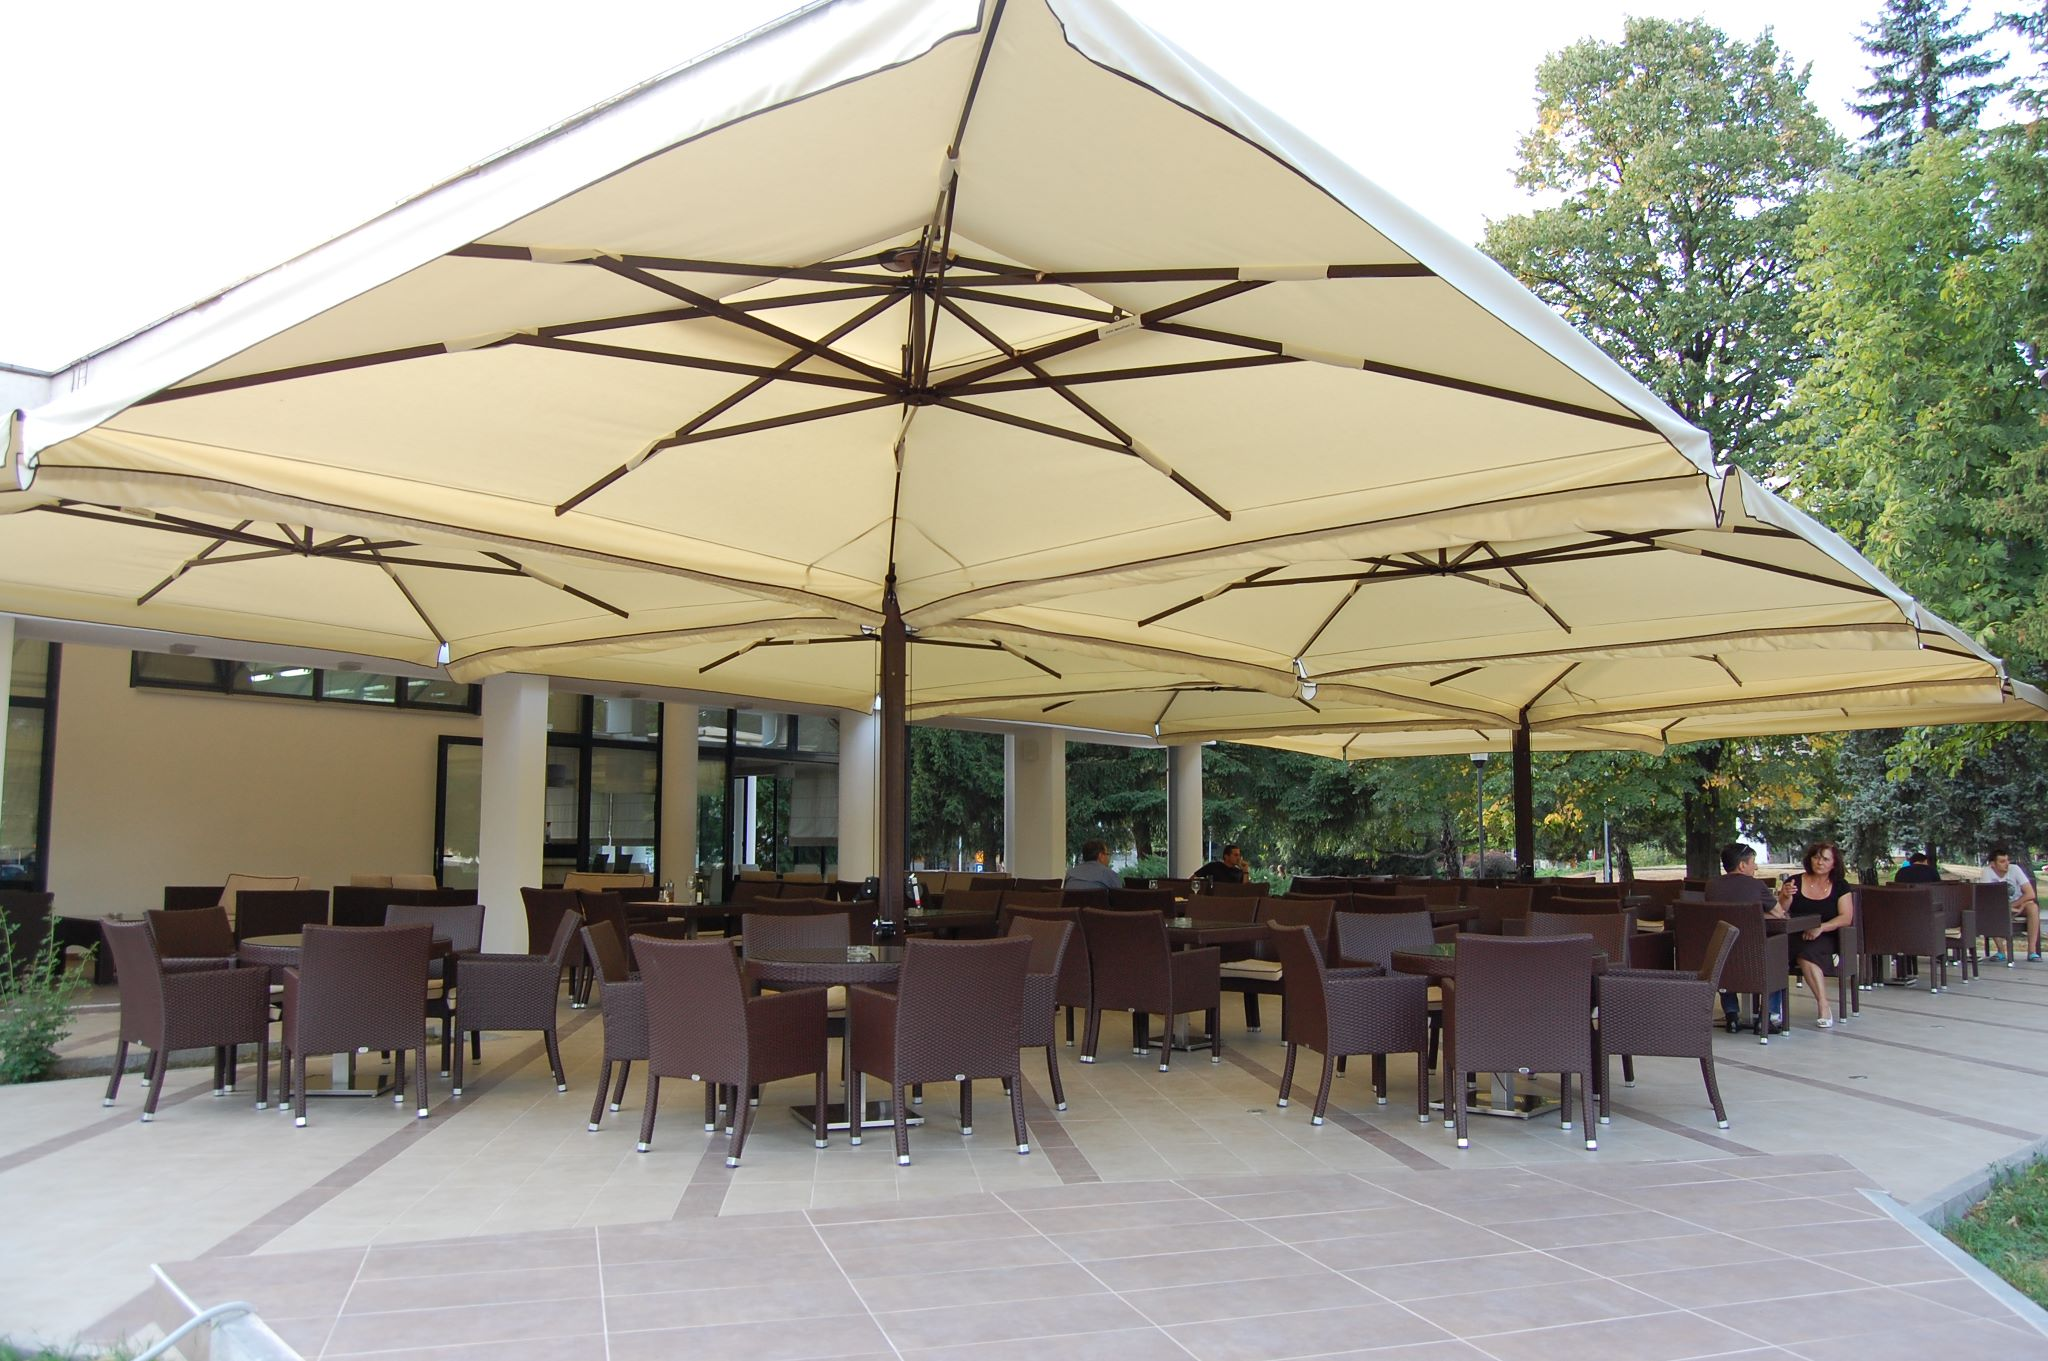 patio offset cantilever forest p ft with htm shade umbrella umbrellas green